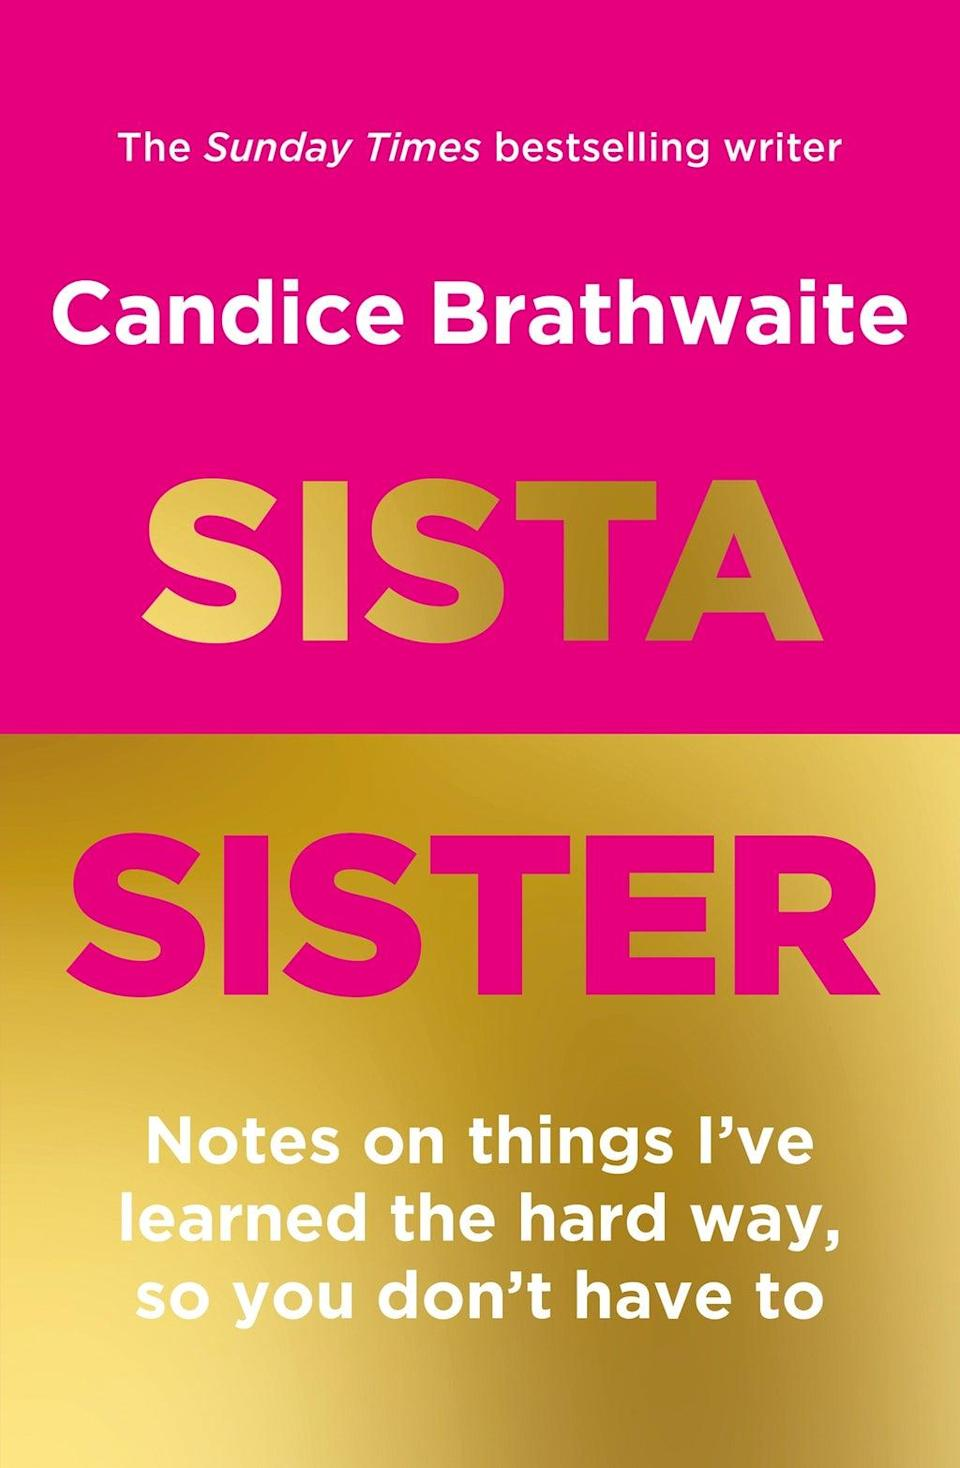 (Sista Sister: Notes on Things I've learned the hard way so you don't have to by Candice Brathwaite (Quercus))